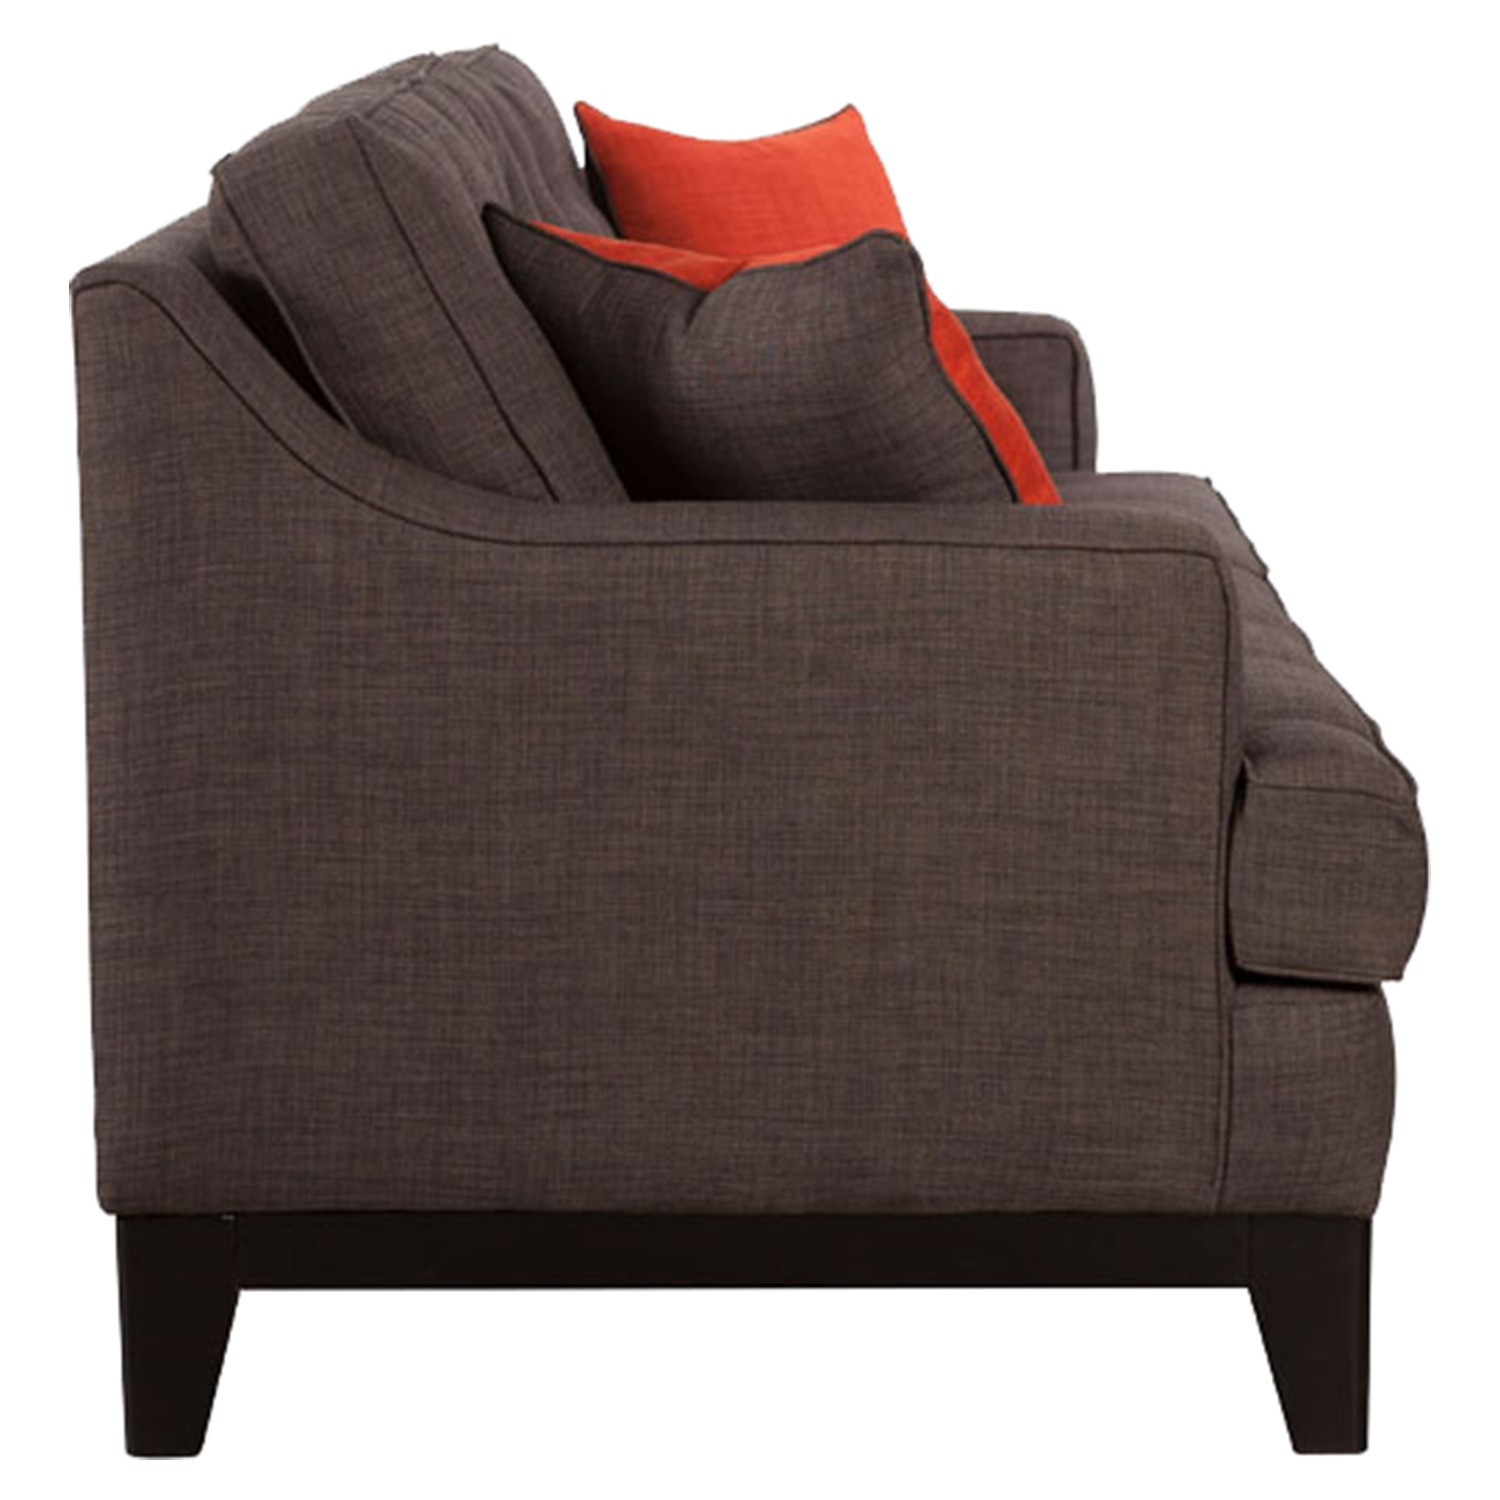 Chicago Tufted Sofa - Charcoal and Burnt Orange - ZM-100174